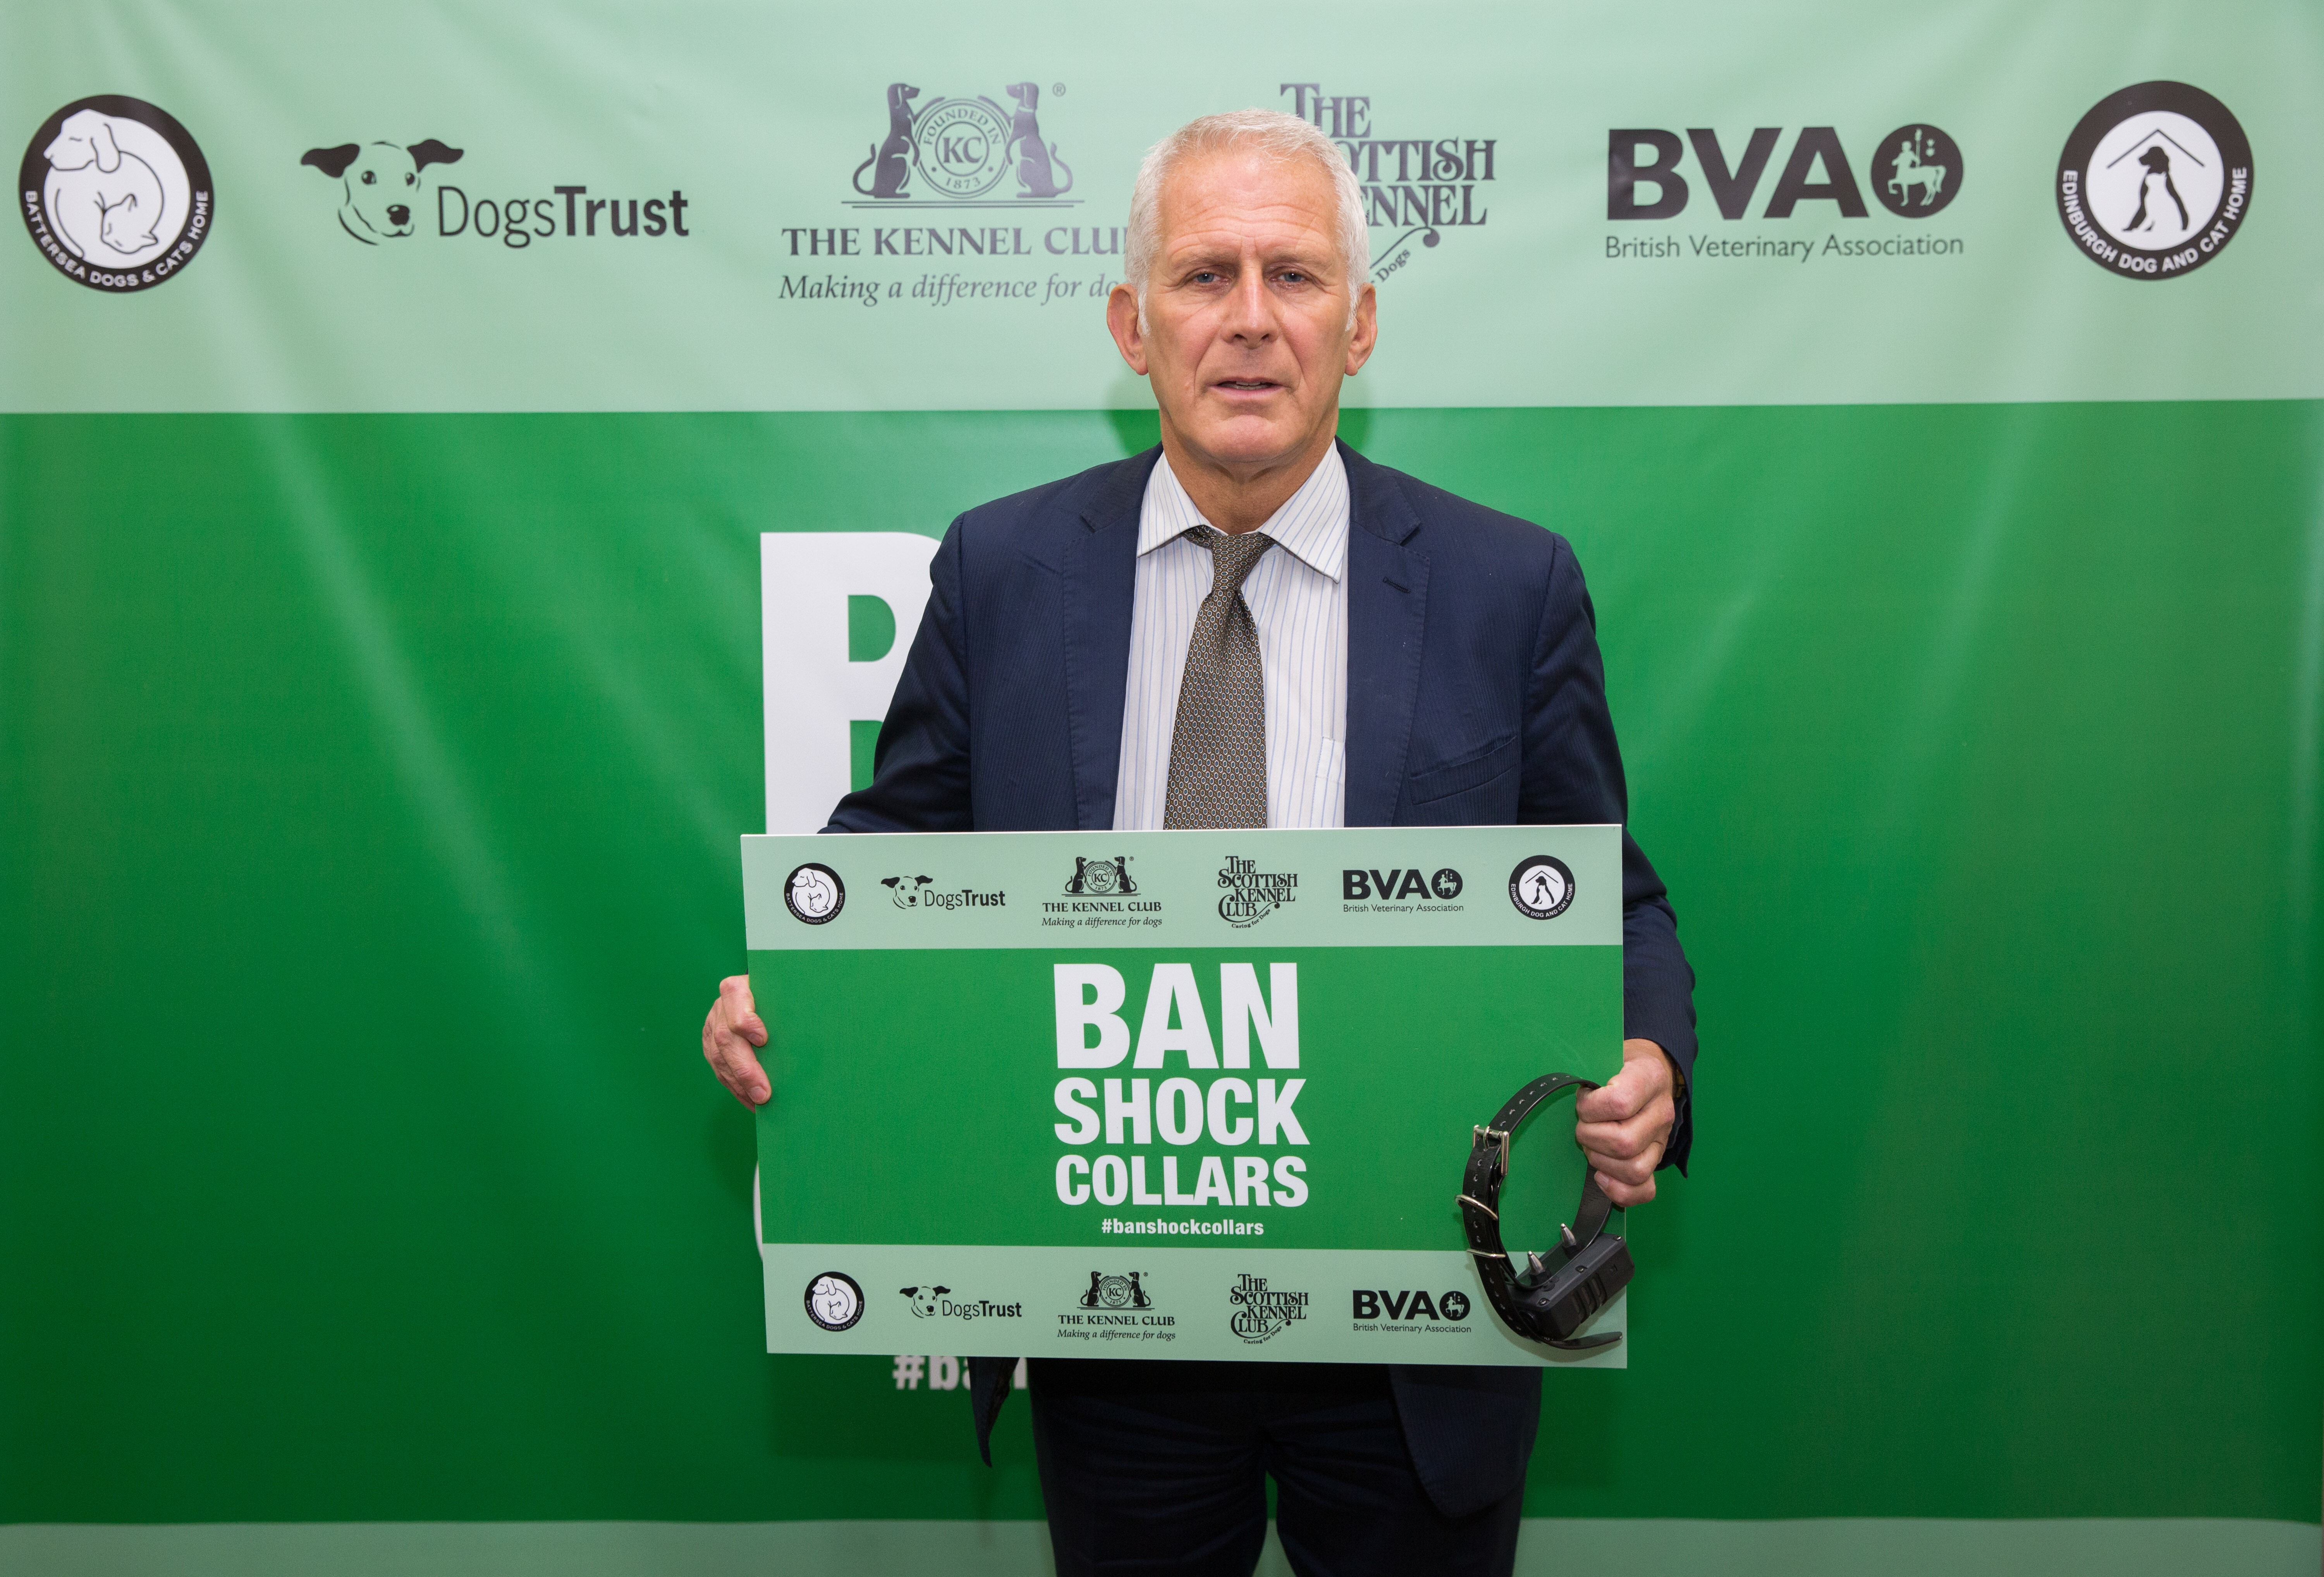 Gordon has joined animal welfare and veterinary organisations in calling for a ban on electric shock collars for dogs.        He has joined forces with the Kennel Club, Battersea Dogs & Cats Home, the British Veterinary Association and the Dogs Trust in calling in Parliament for a ban on the use...